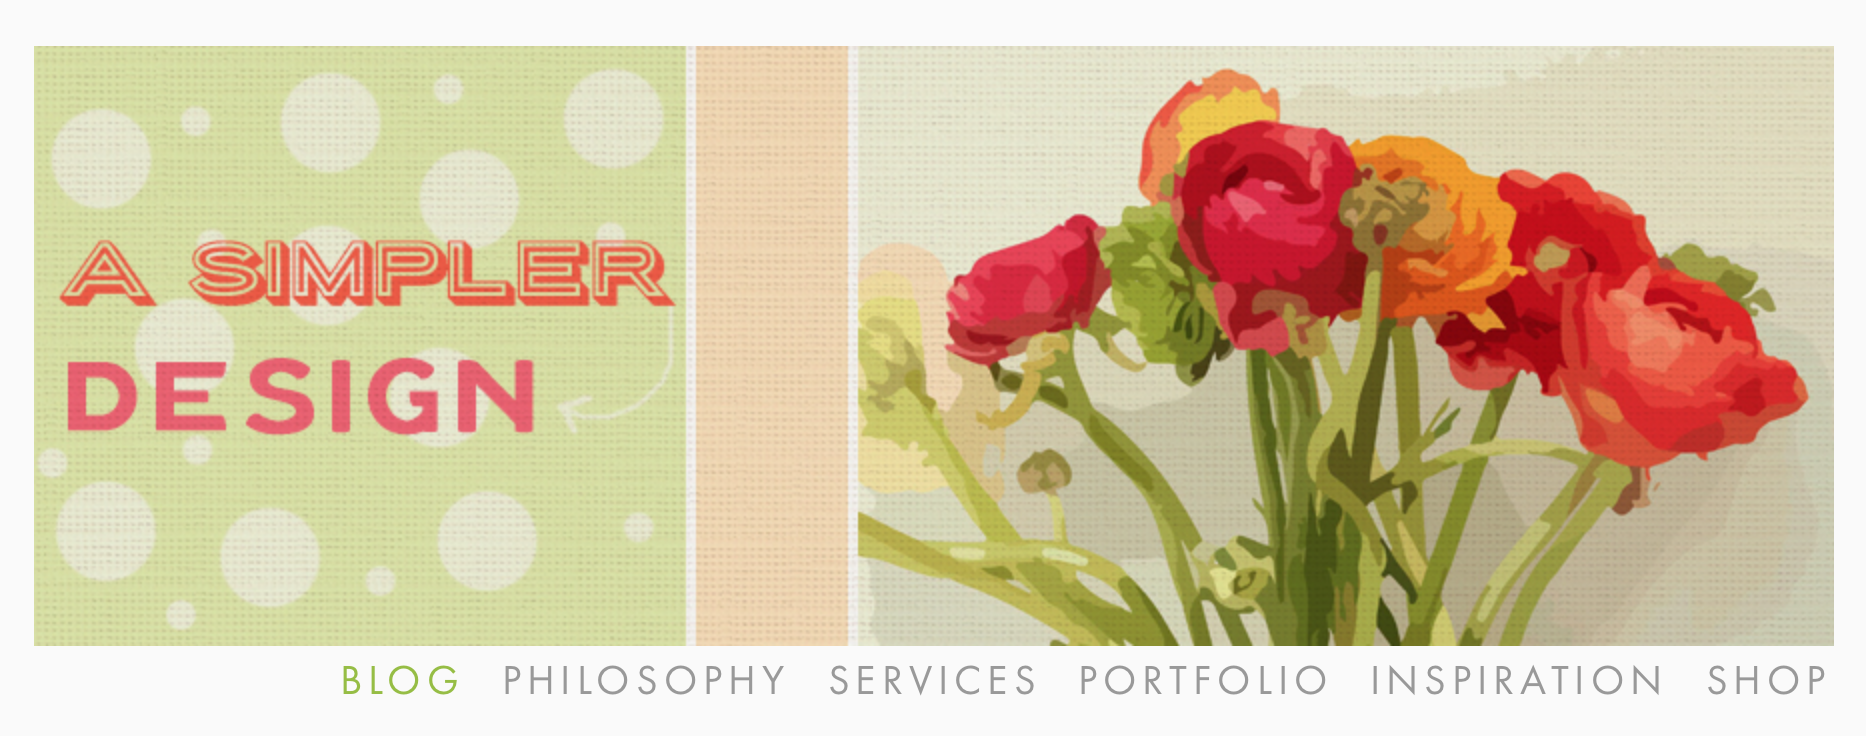 Made this logo during the Blogshop class. It's still a work in progress, but I thought it was pretty enough to try out!